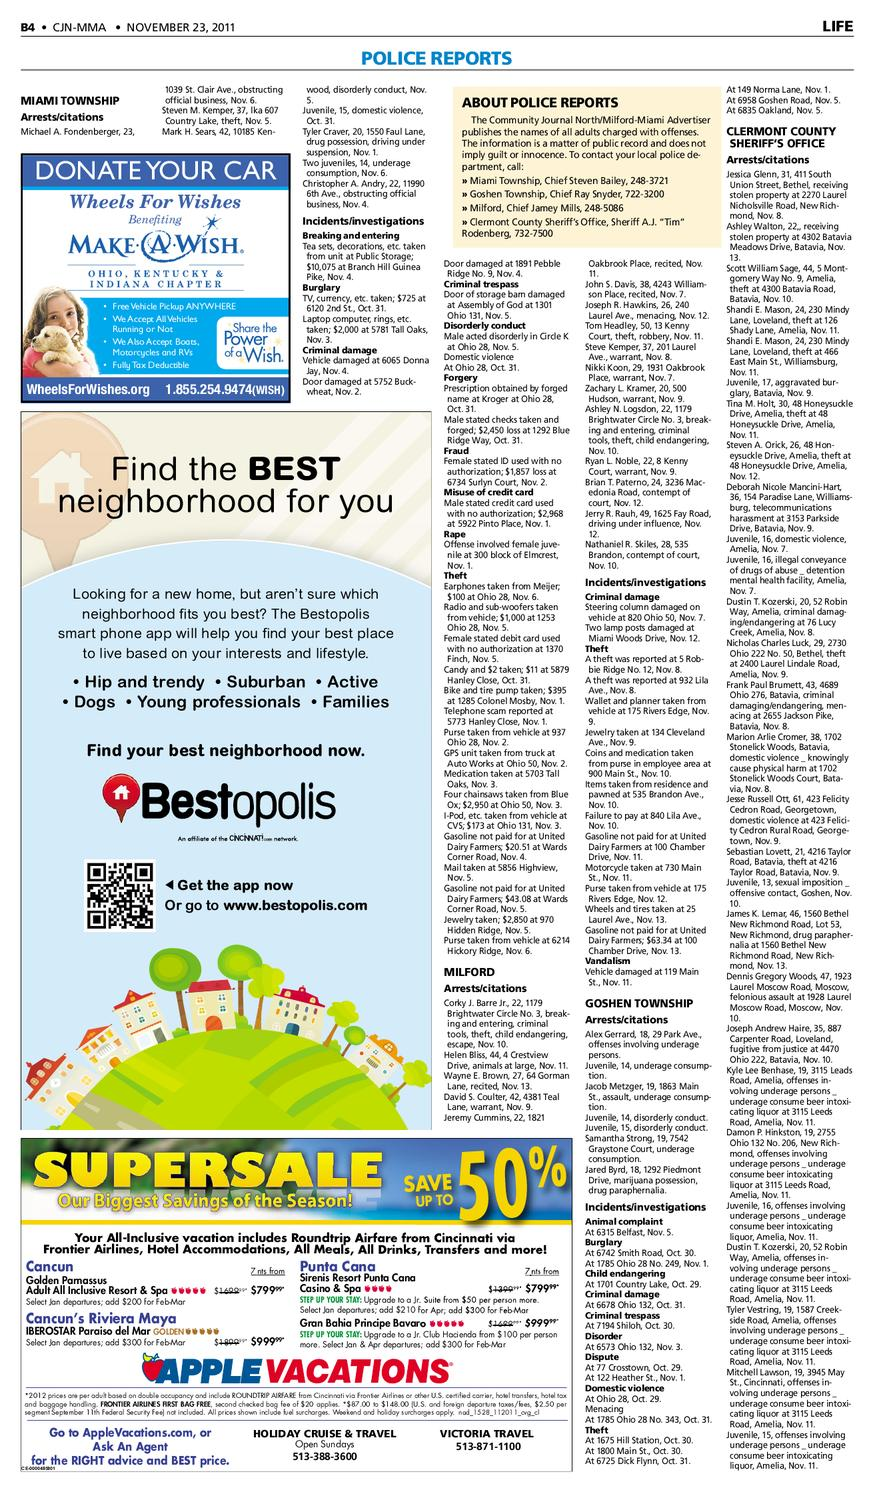 milford-miami-advertiser-112311 by Enquirer Media - issuu